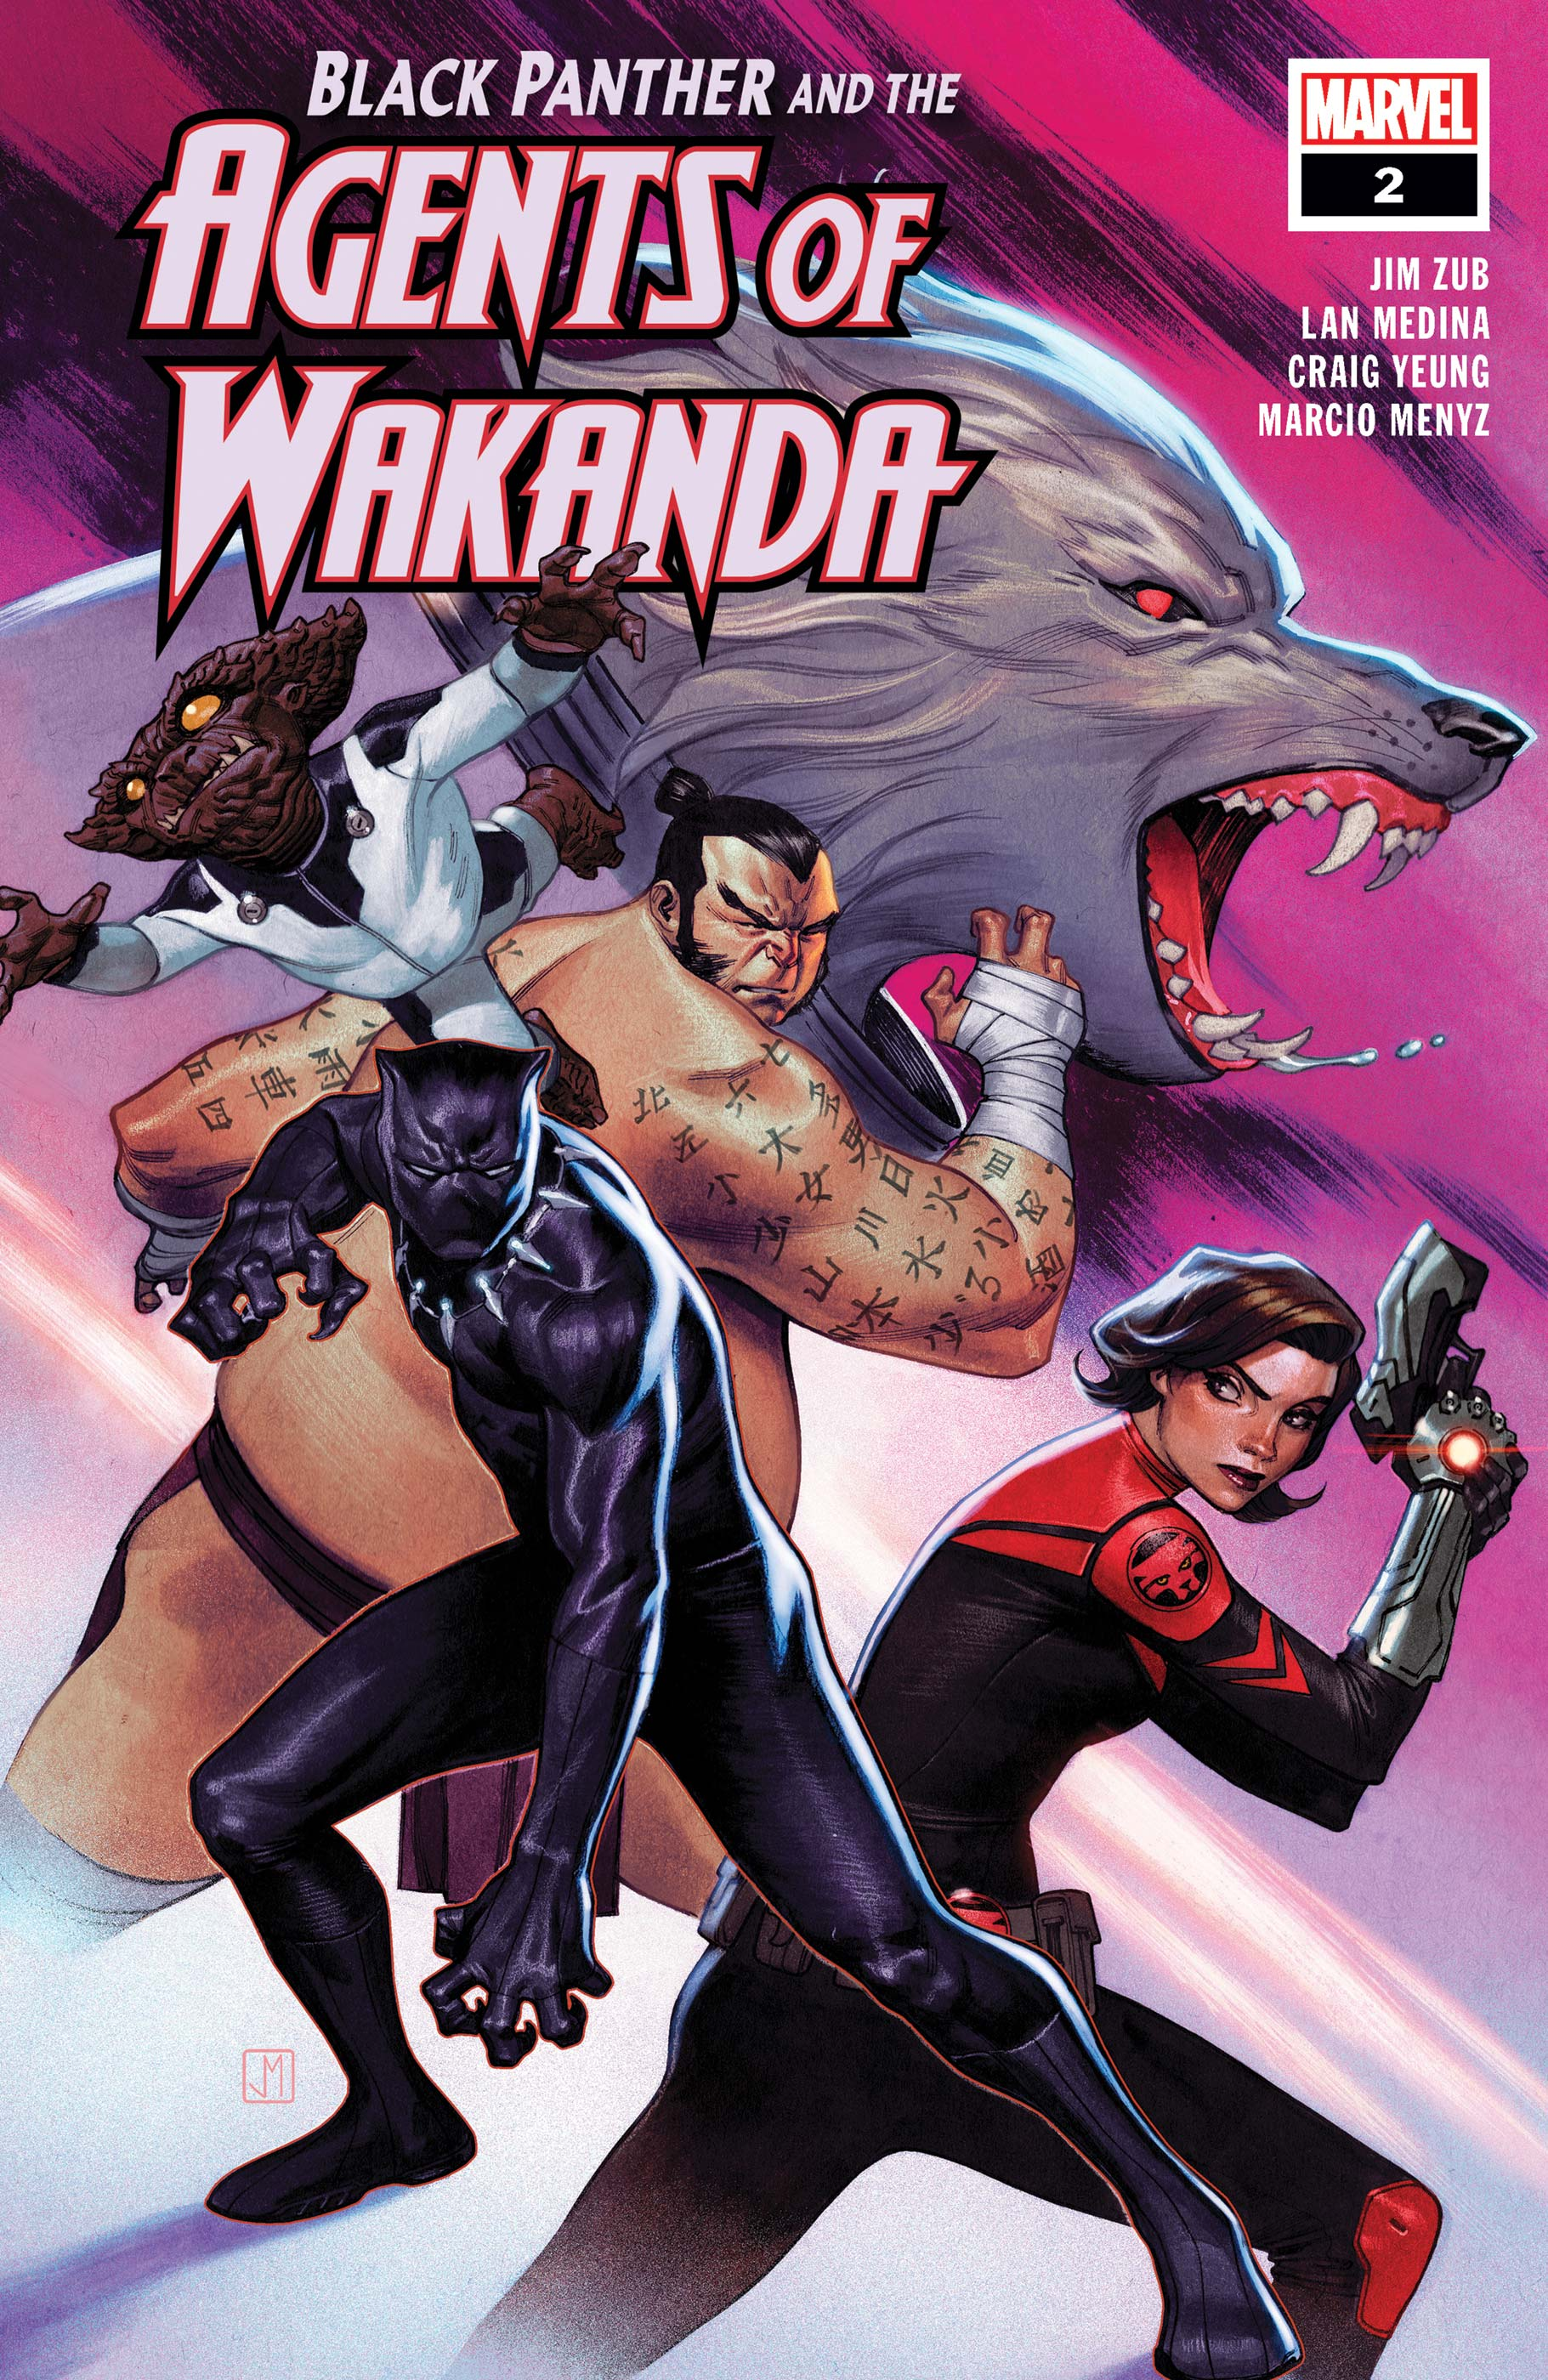 Black Panther and the Agents of Wakanda (2019) #2